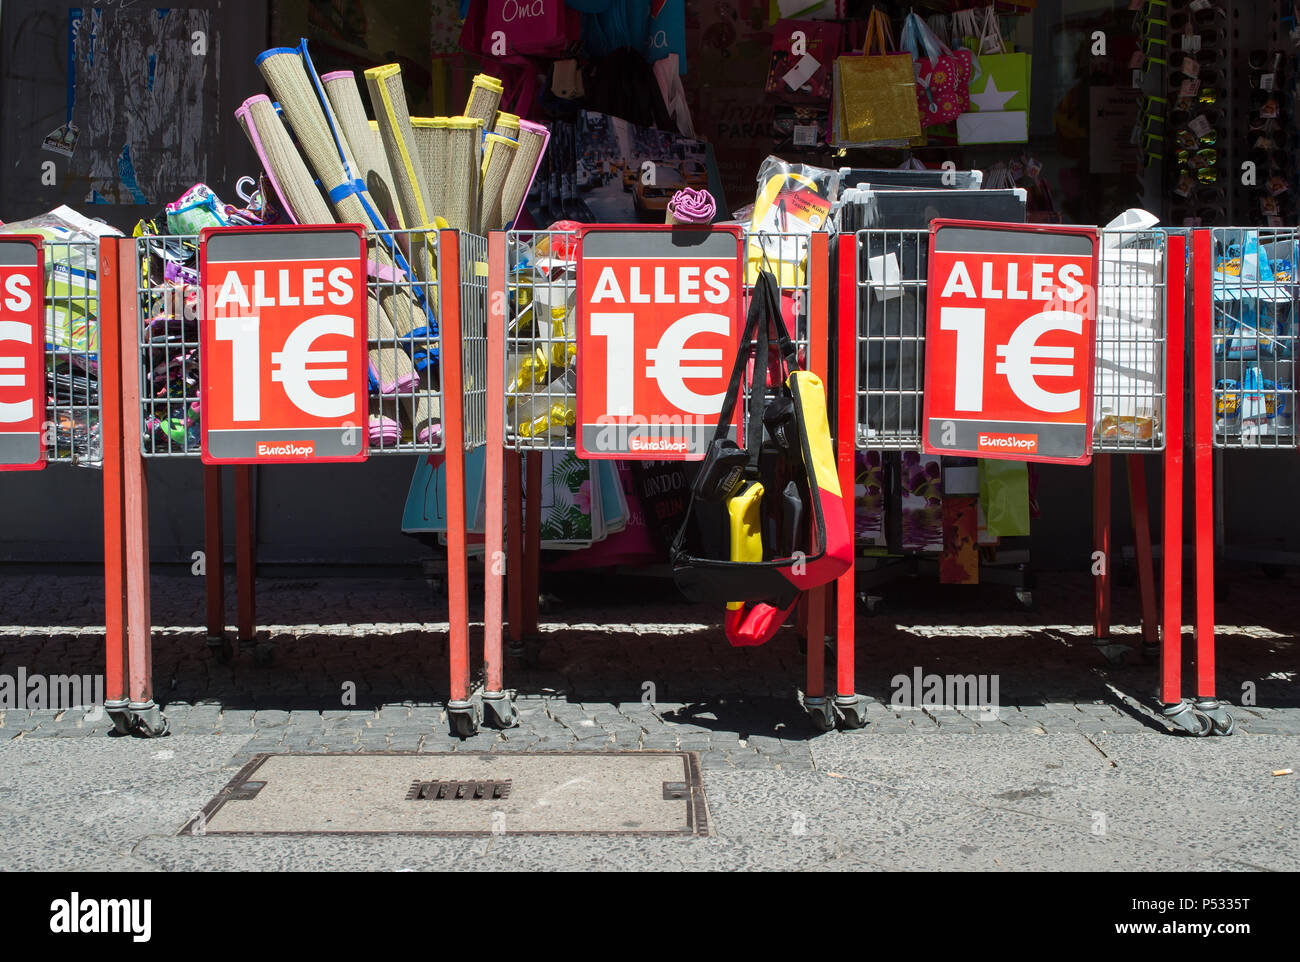 Advertising for lowered products in retail - all for one euro - Stock Image